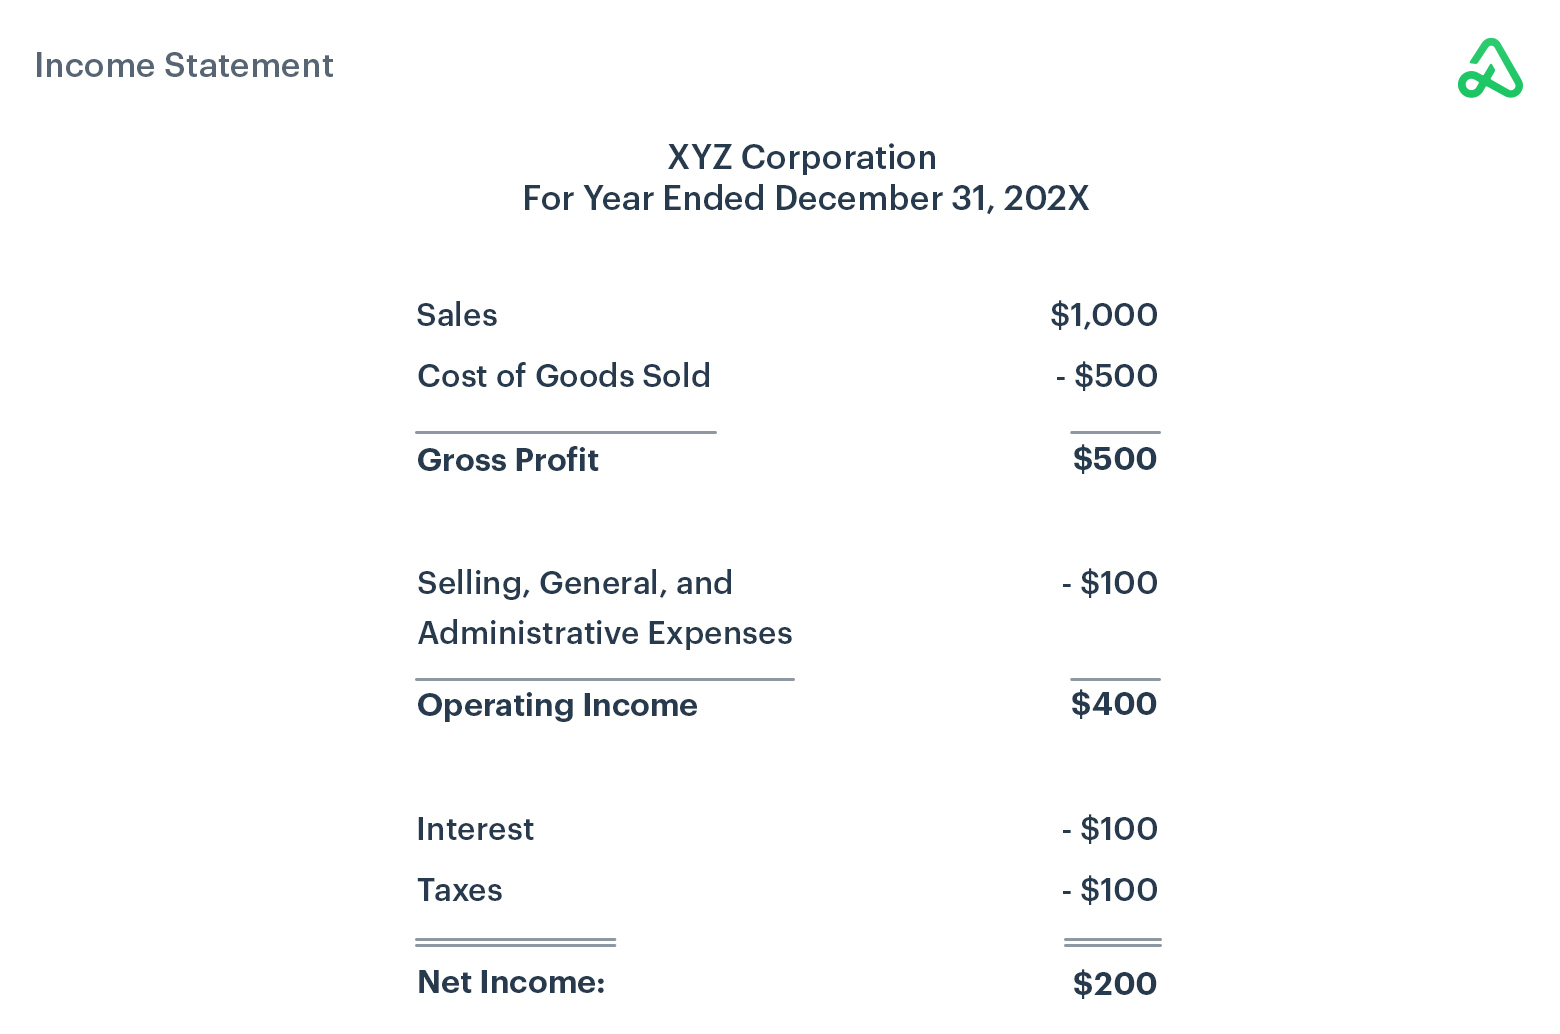 Income Statement example image